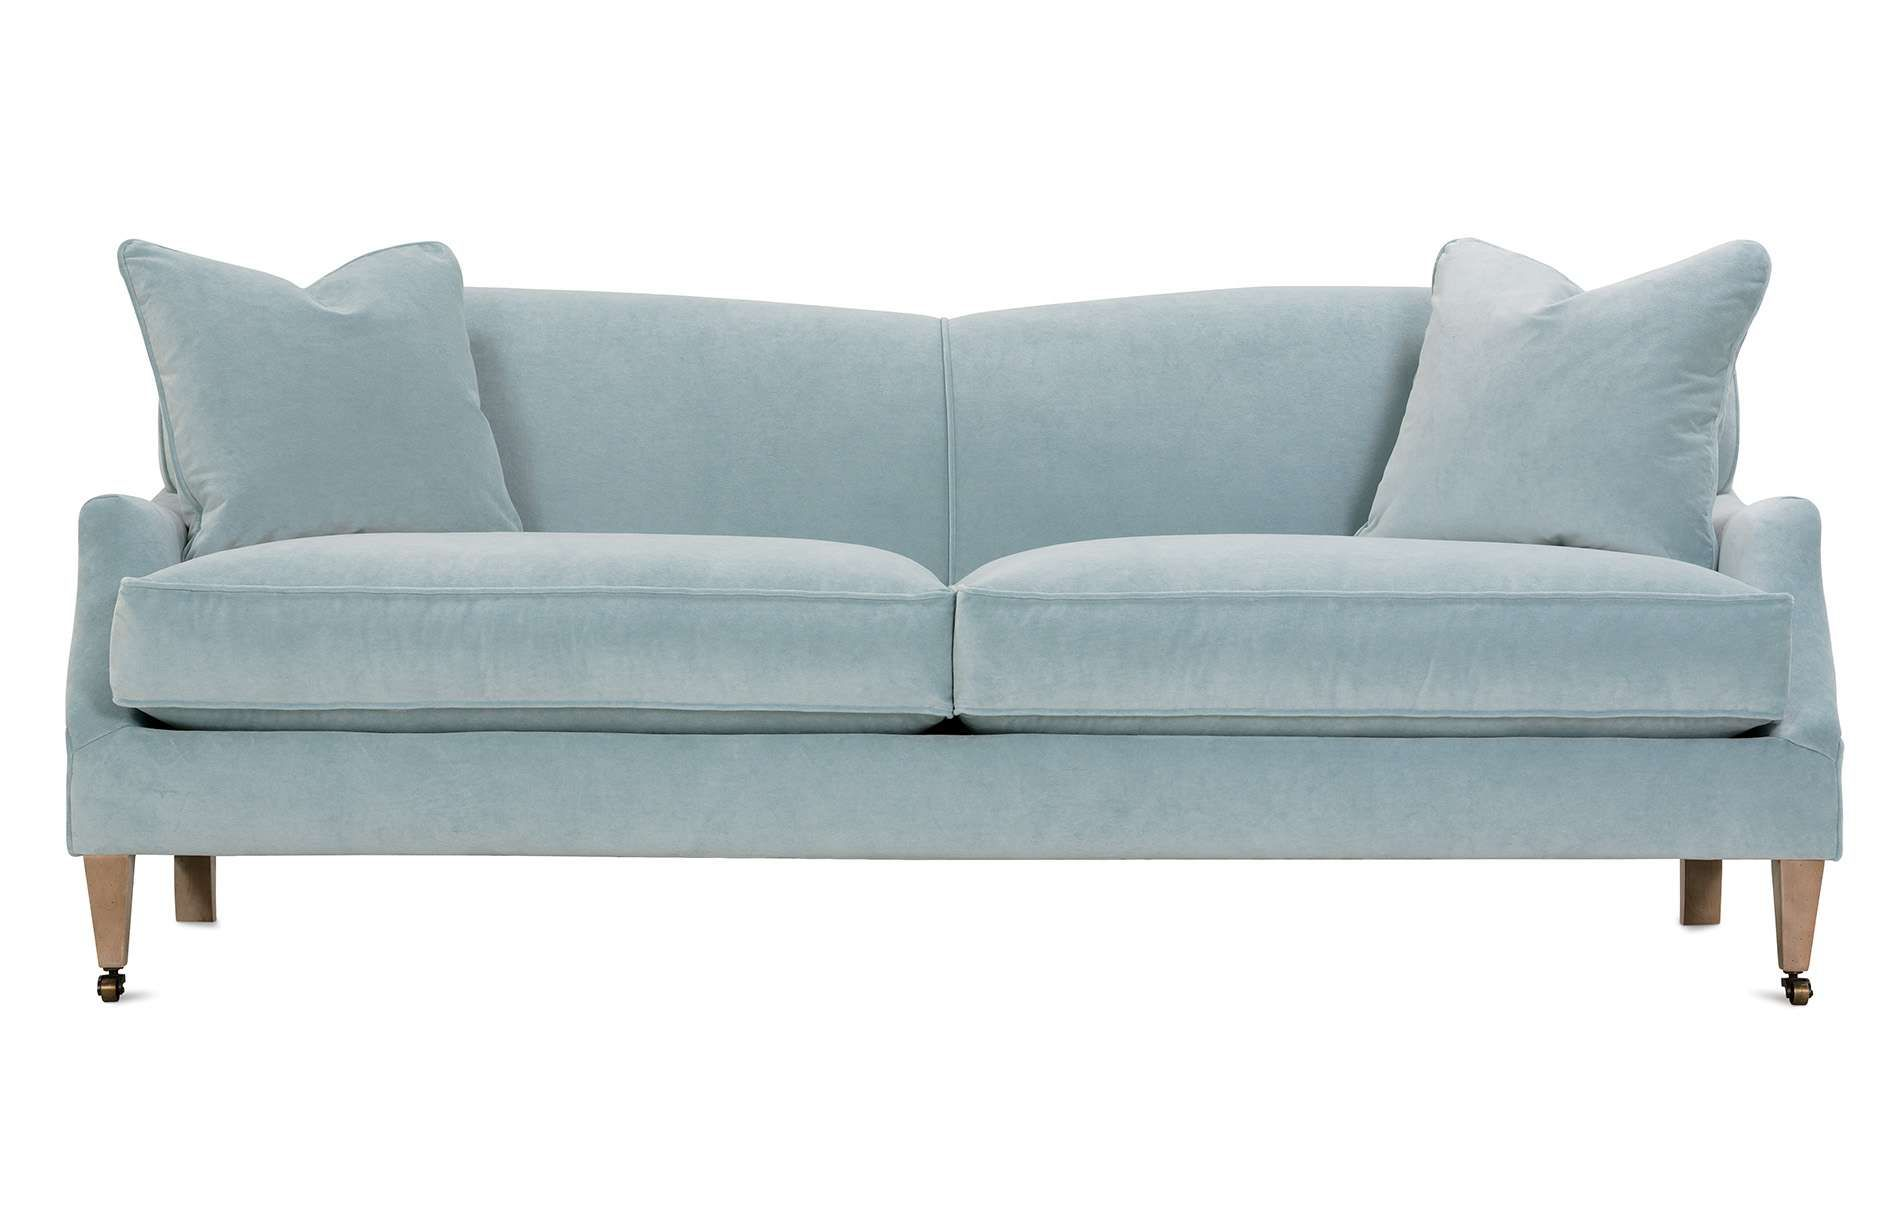 The Marleigh Sofa Is A Tight Back Sofa Featuring Two Cushions And Matching Pillows Customize The Body Fabric Tight Back Sofa Light Blue Sofa Cushions On Sofa